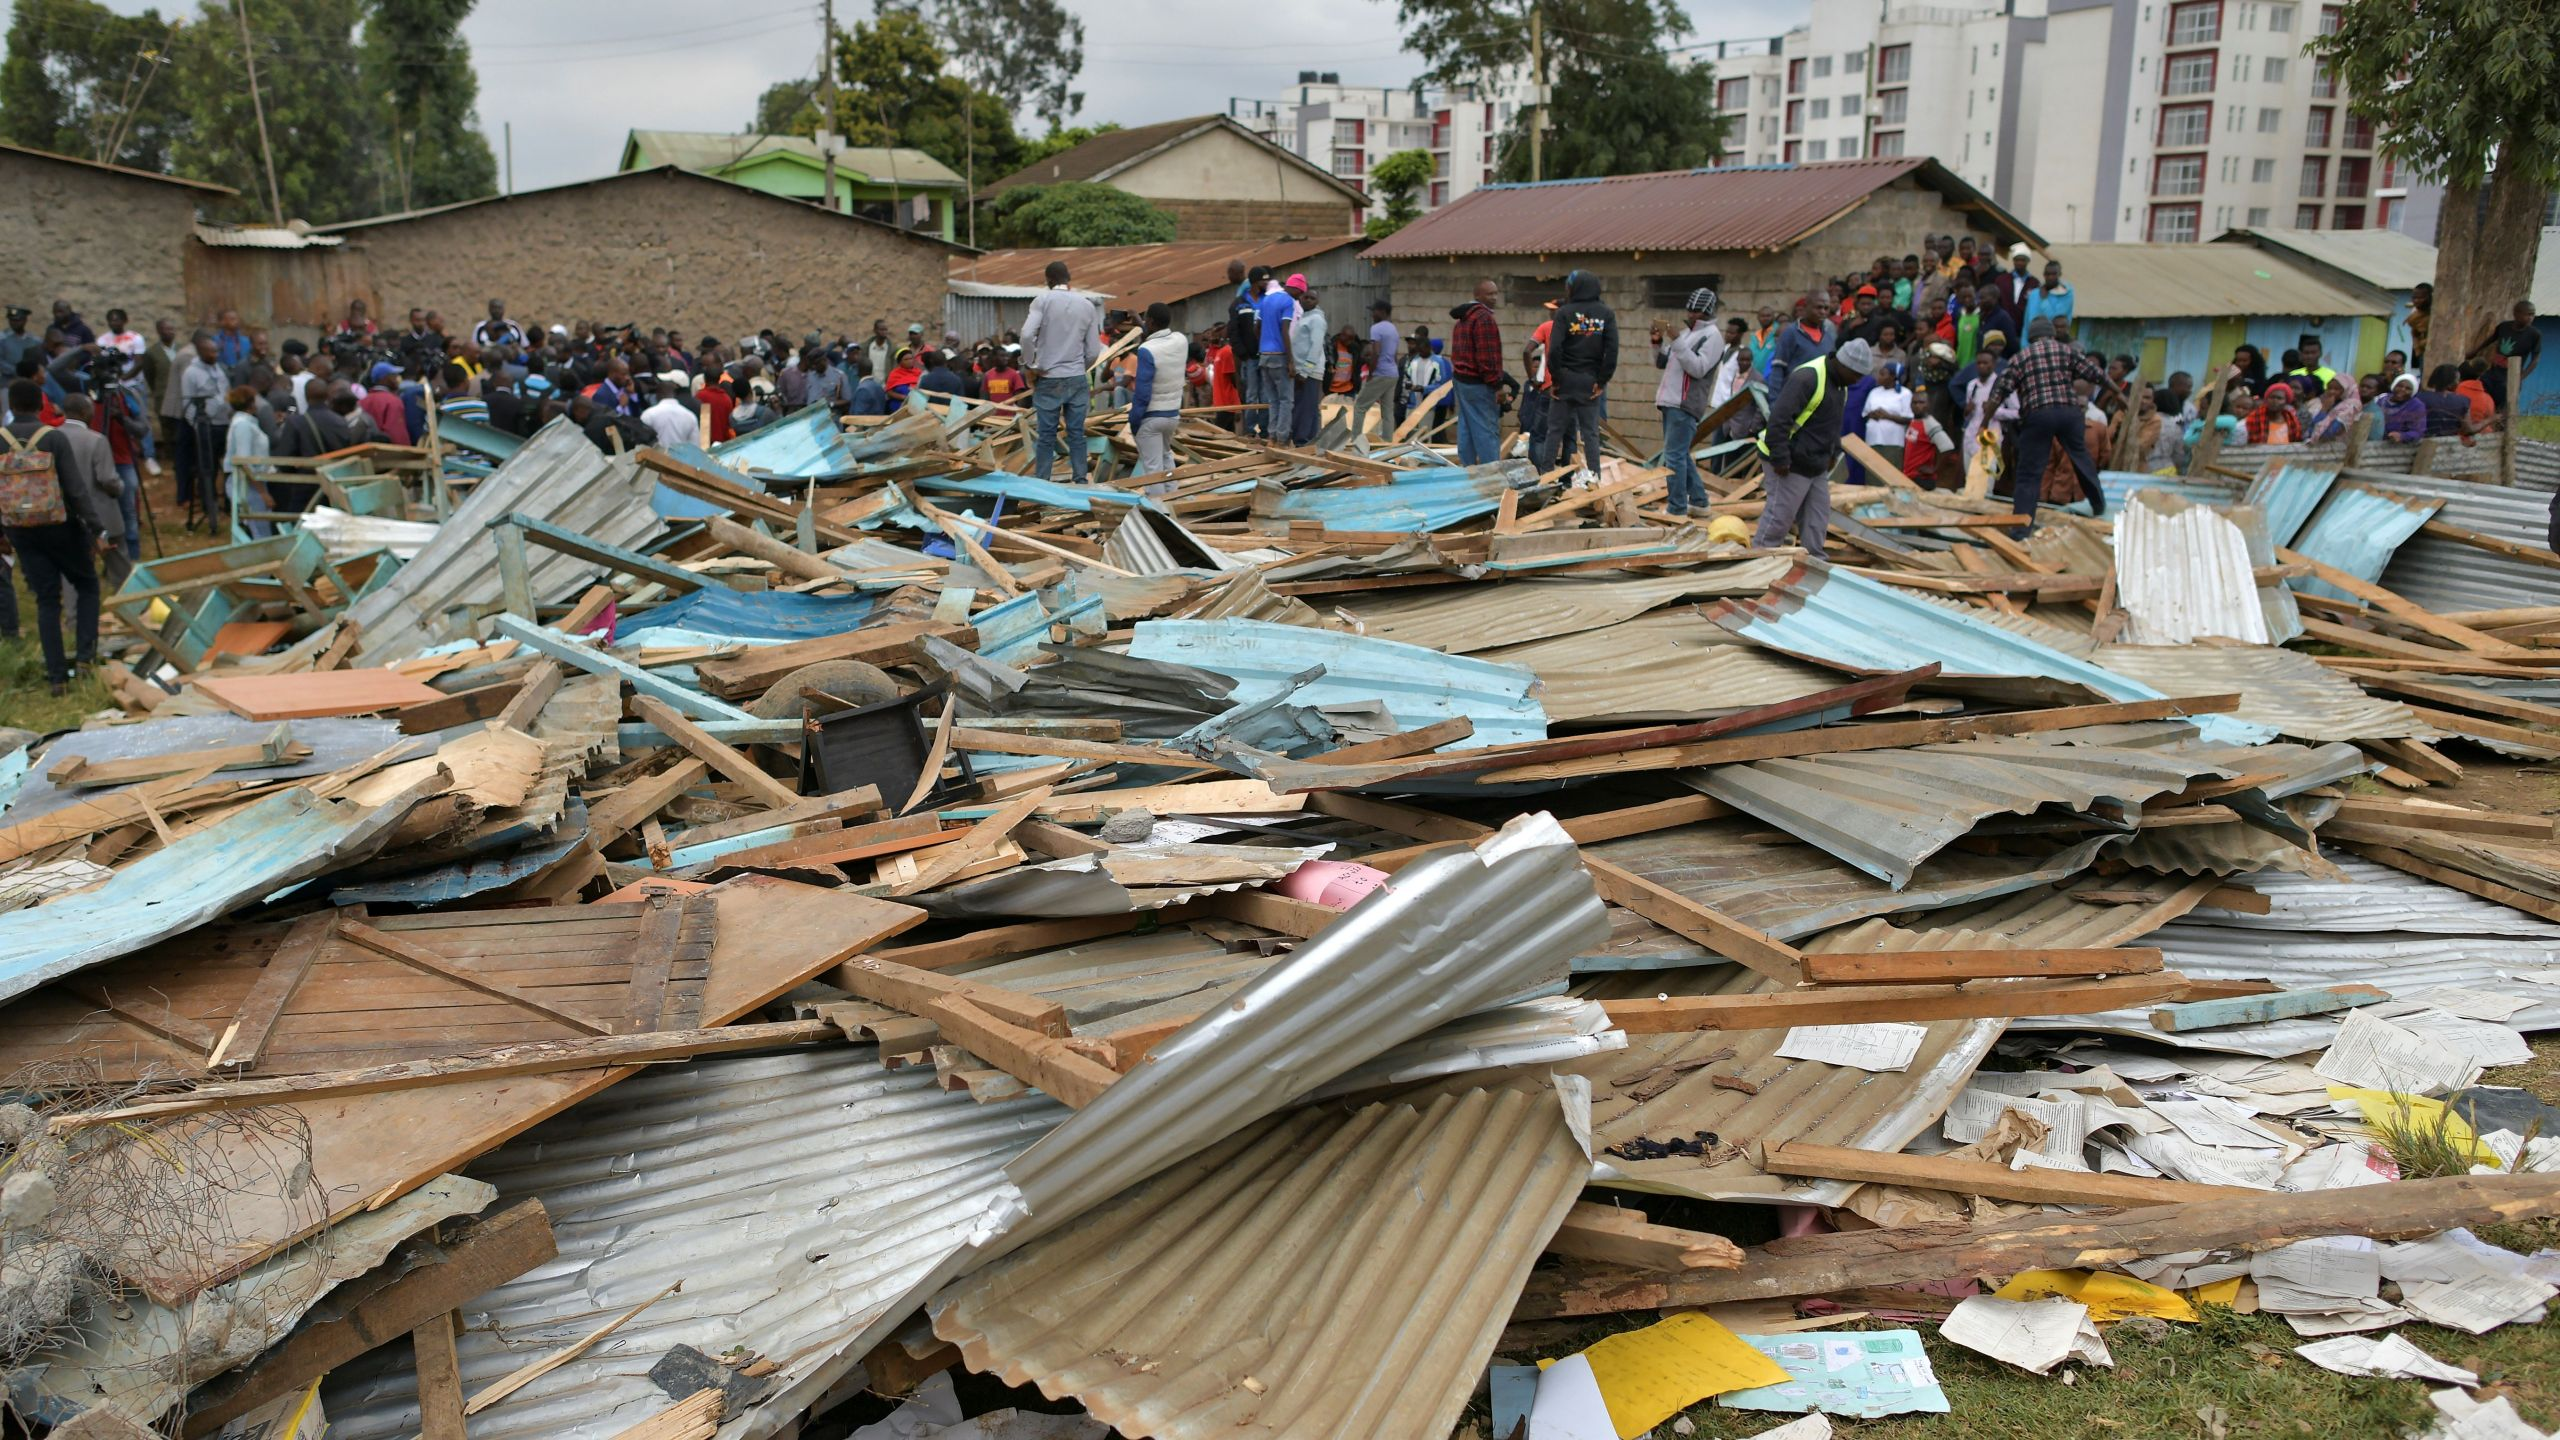 Relatives stand on debris of a collapsed school building, on September 23, 2019 in Nairobi. (Credit: TONY KARUMBA/AFP/Getty Images)